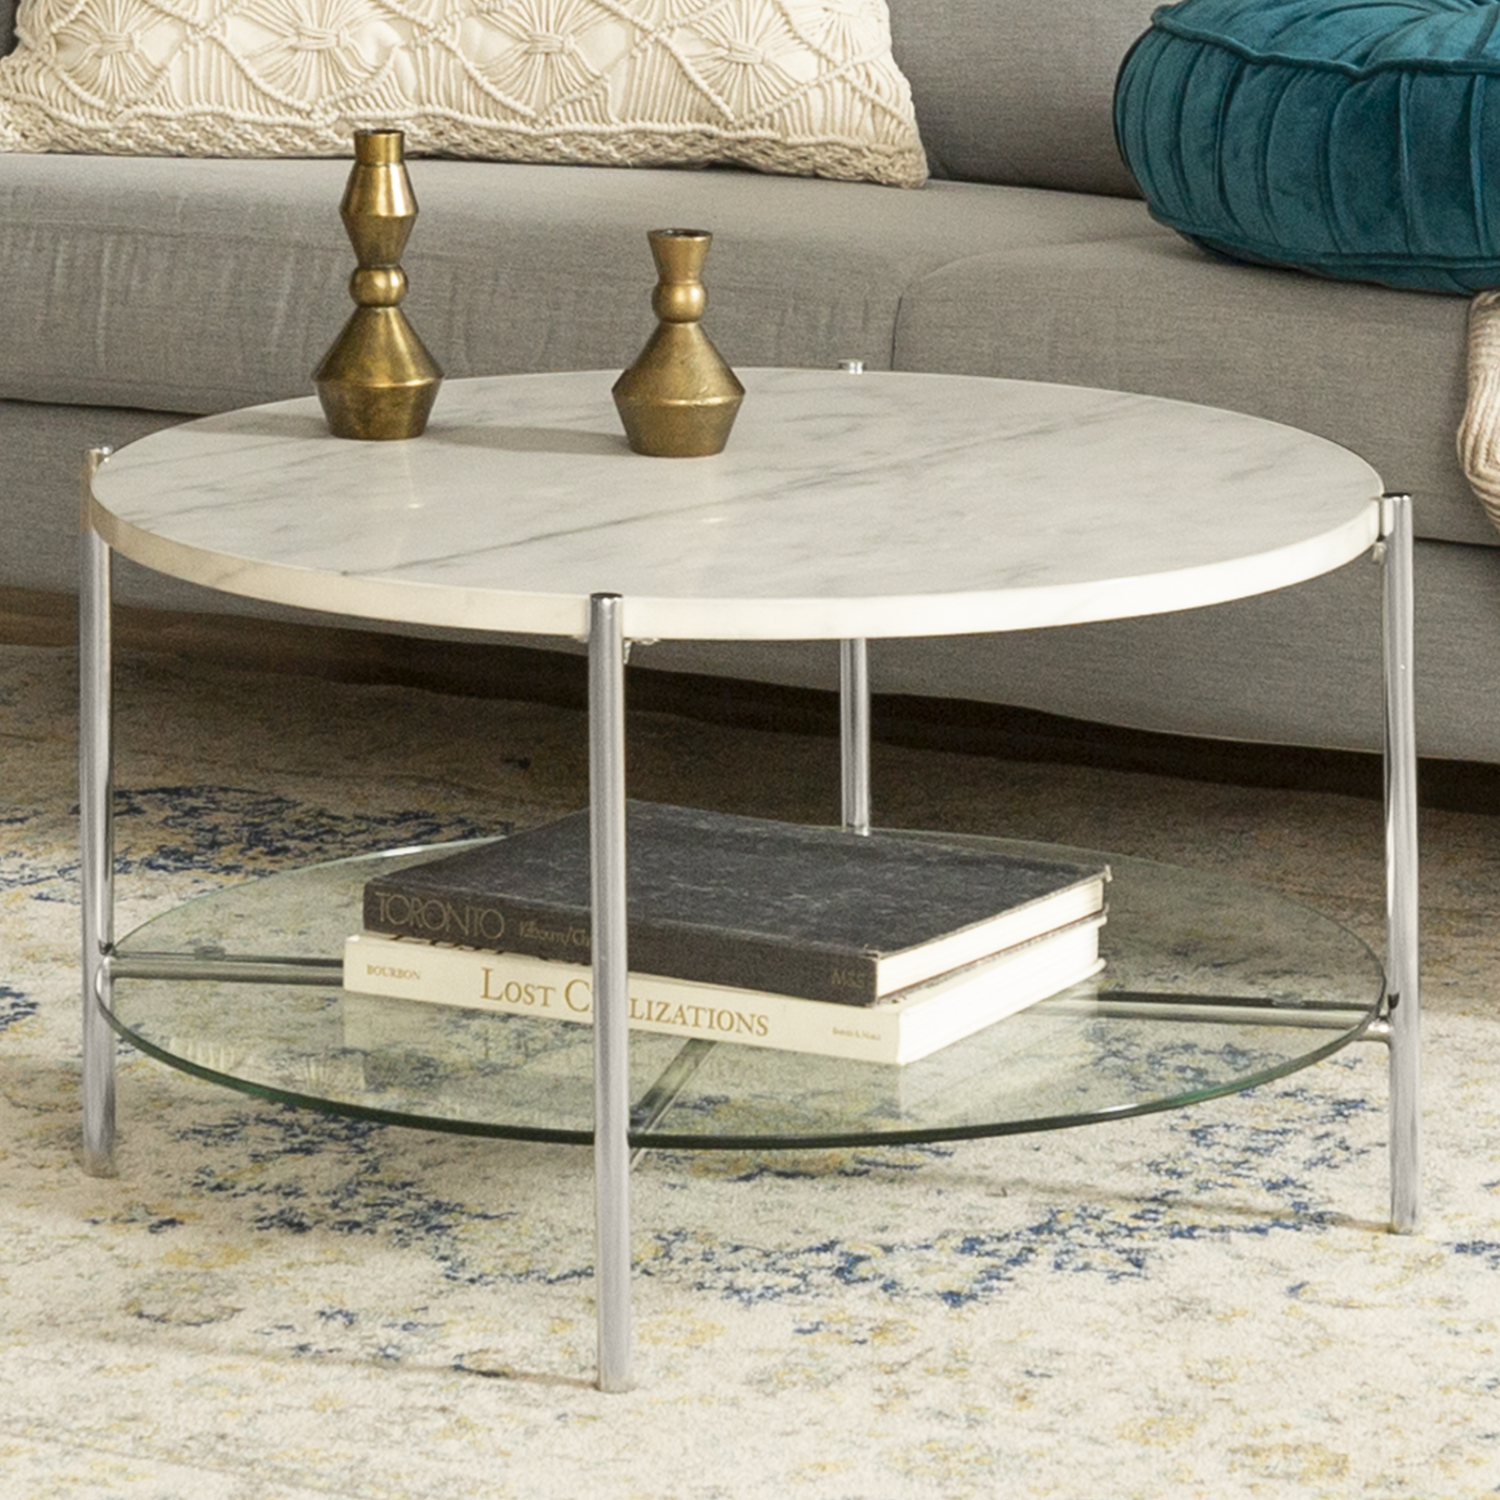 Round White Coffee Table In Faux Marble With Glass Shelf Foster Furniture123